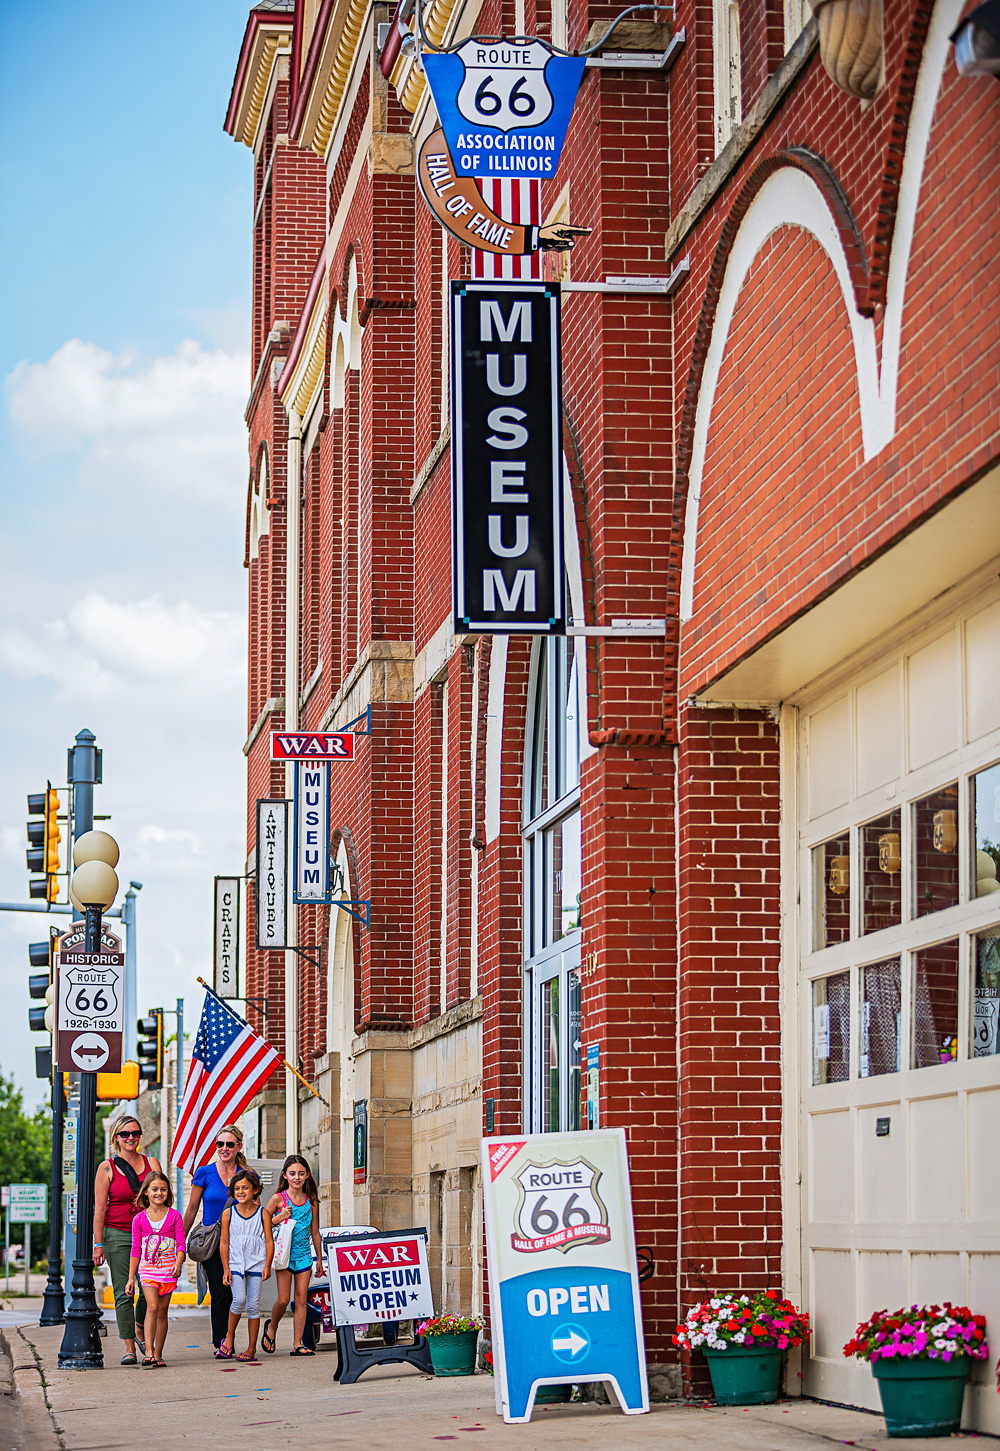 Pontiac, Illinois: Route 66 Hall of Fame and Museum